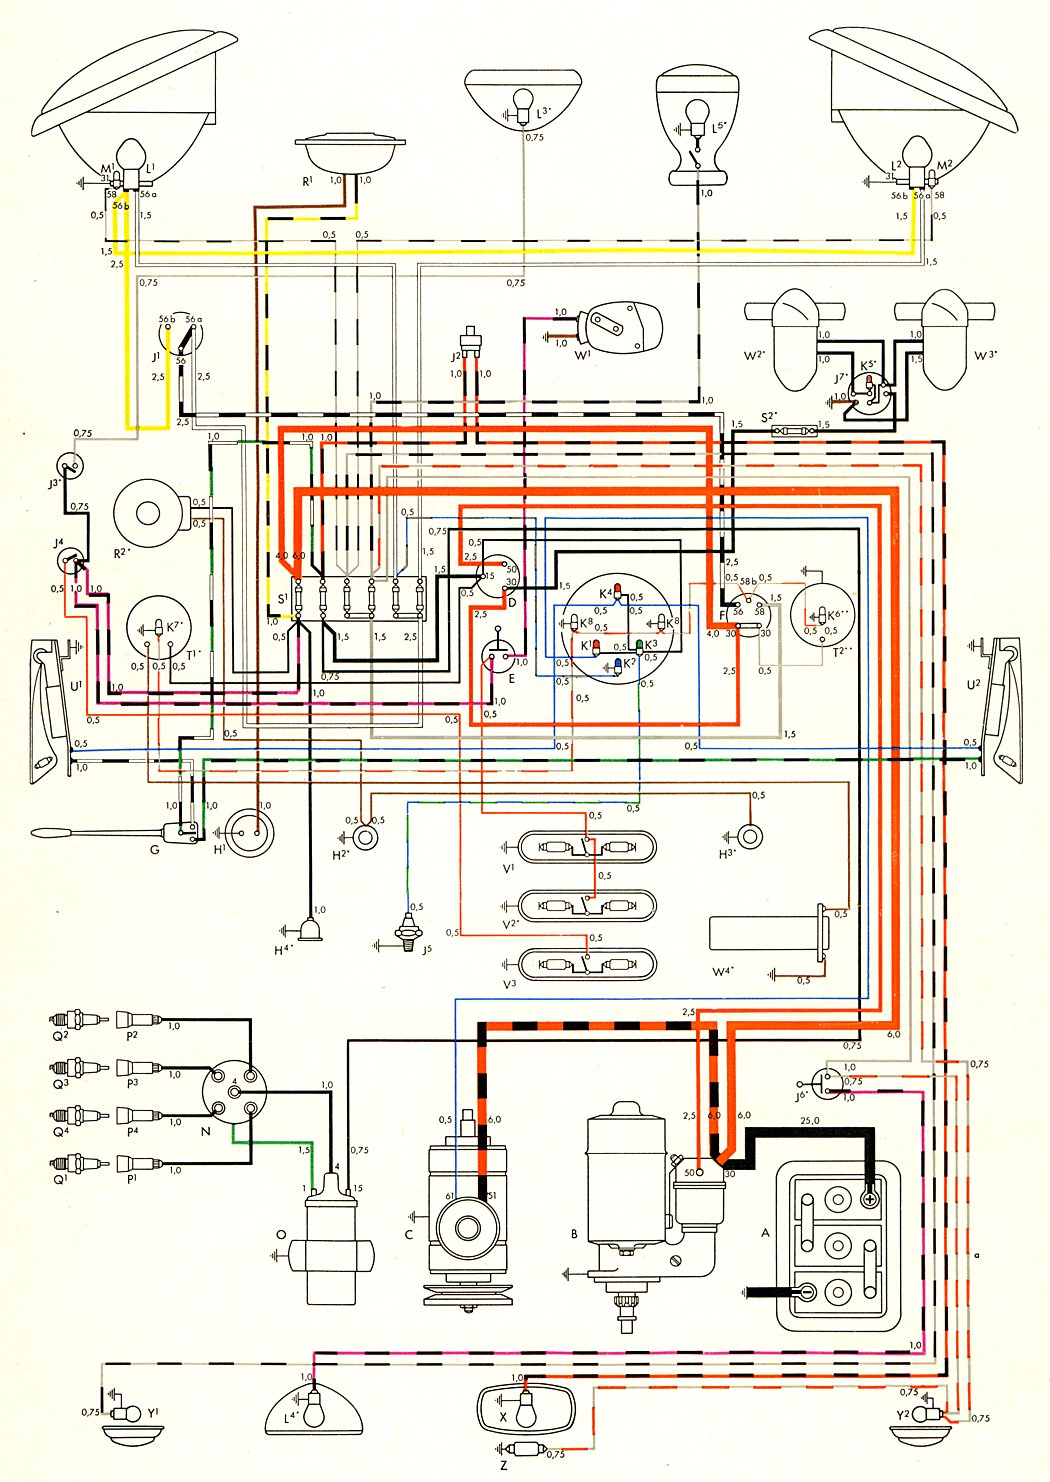 71 vw bus wiring diagram hinduism buddhism venn beetle parking lights free